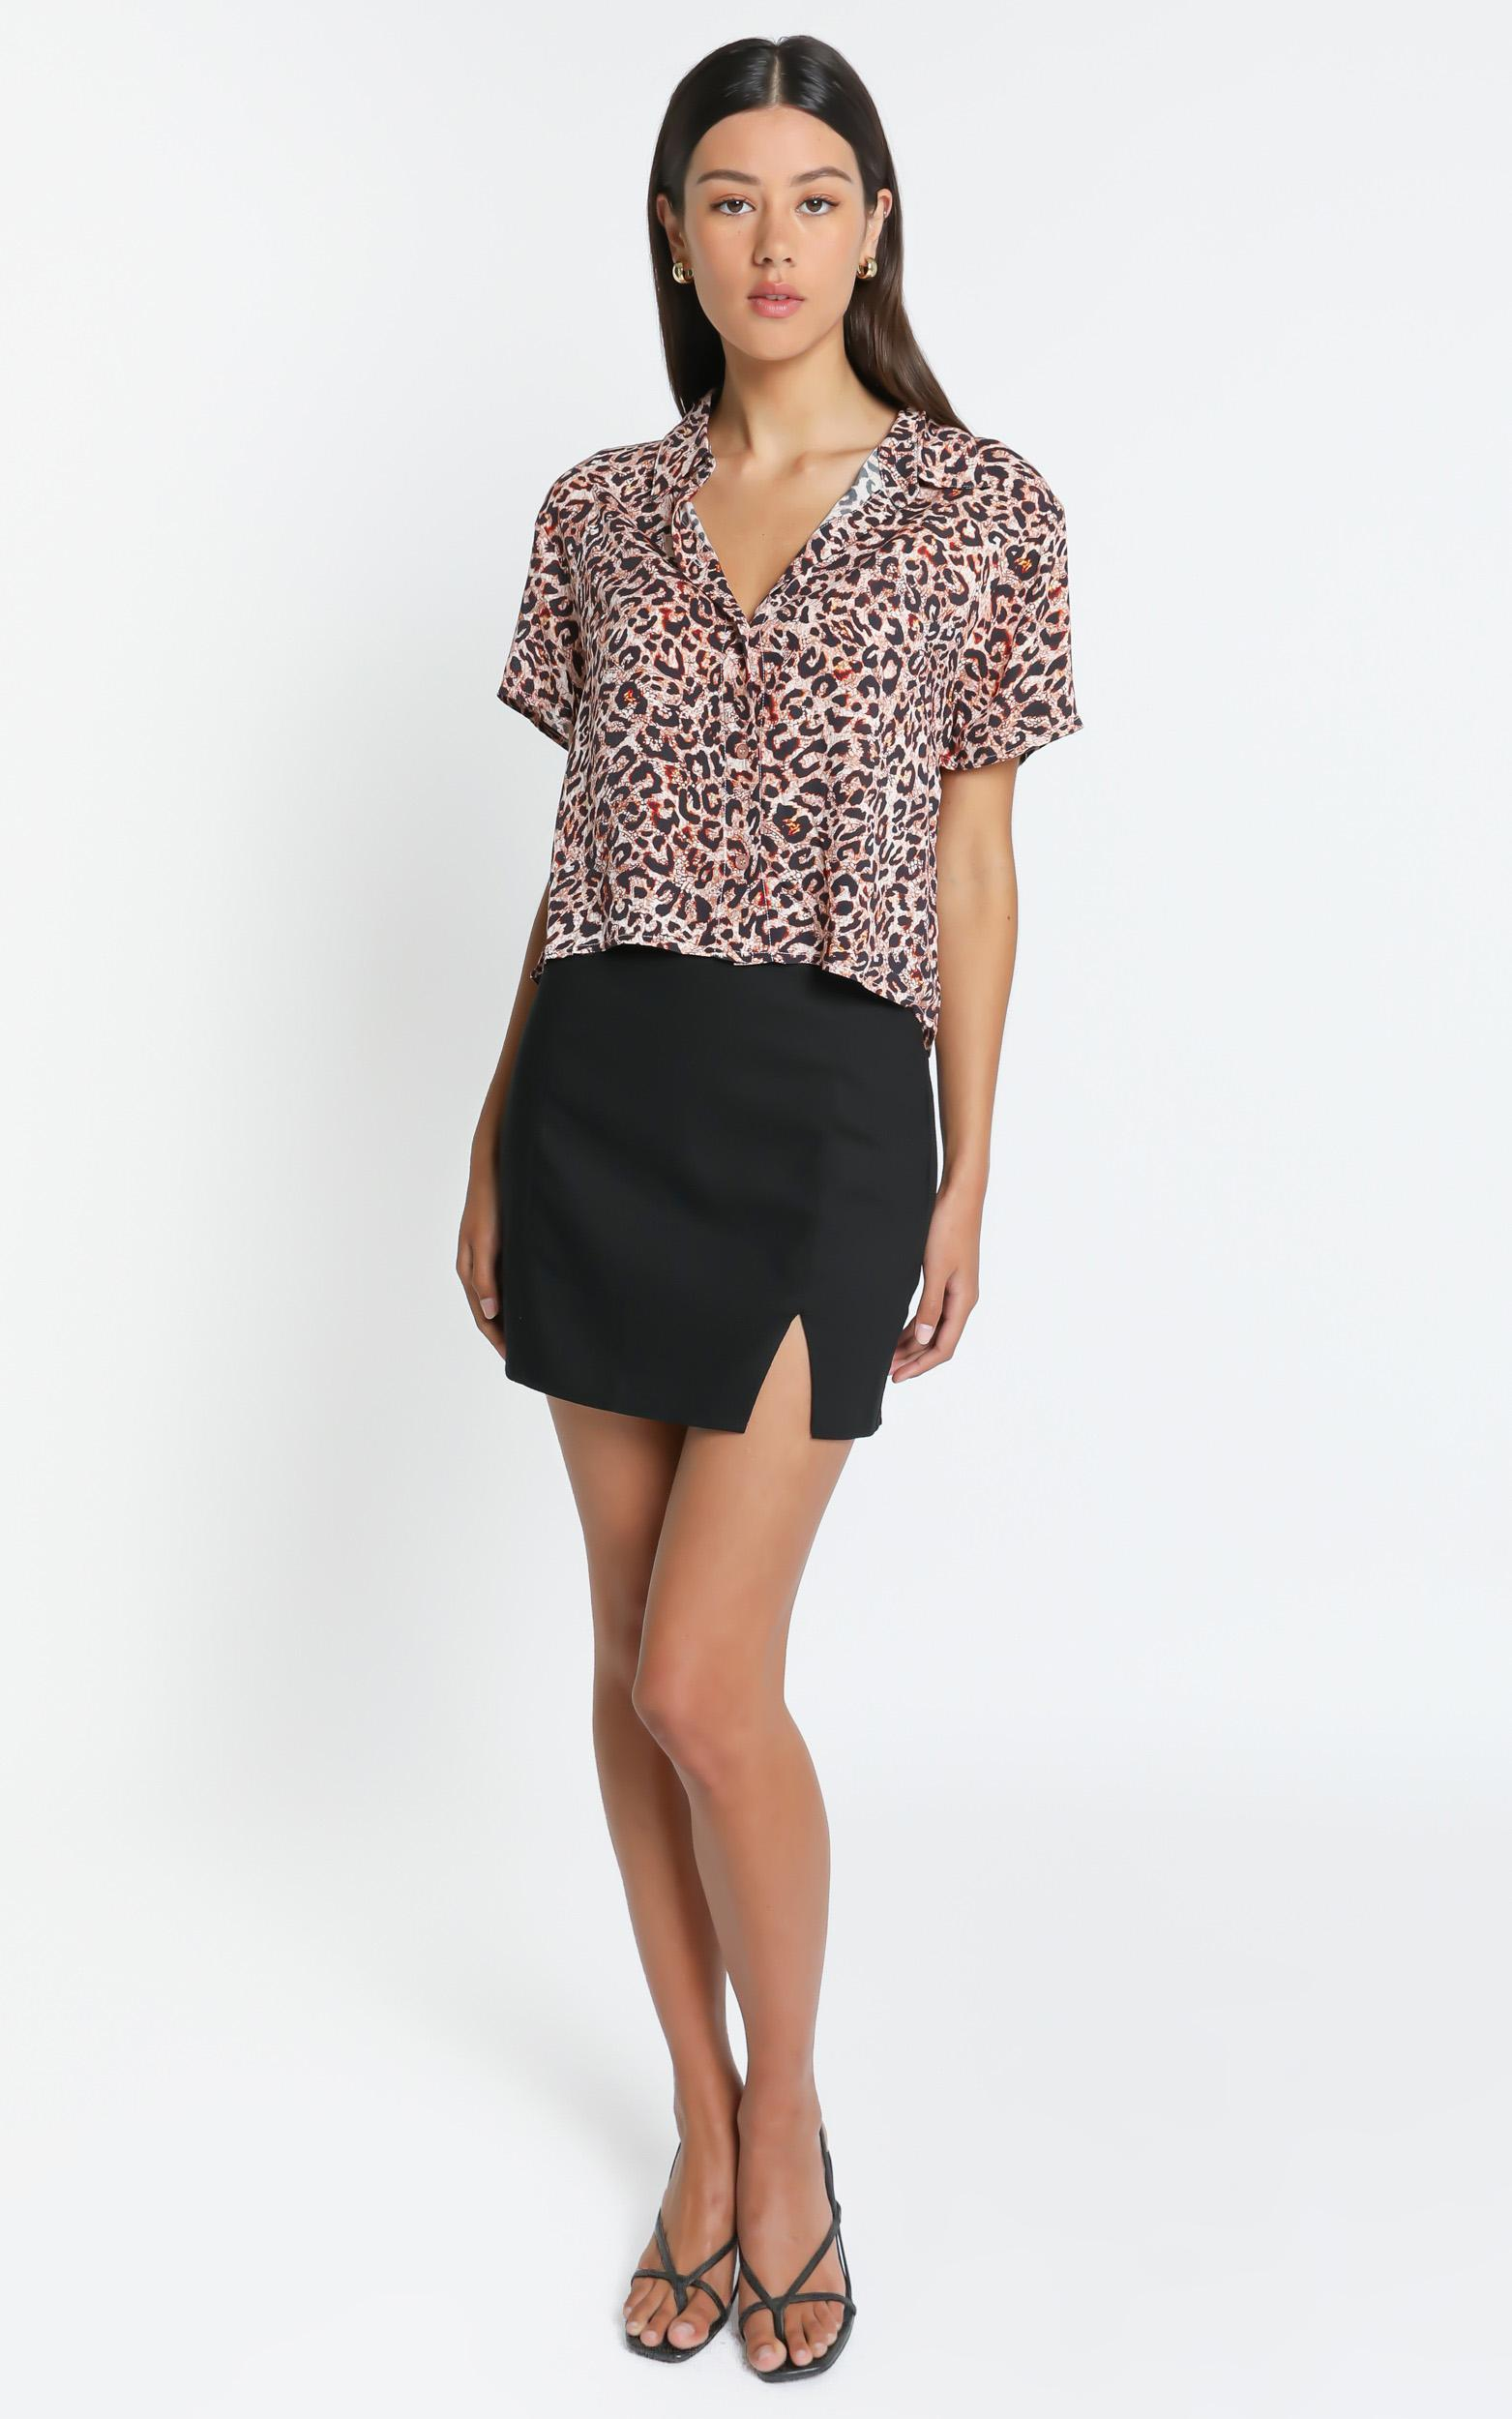 Astra Stars Shirt In  Leopard - 6 (XS), BRN1, hi-res image number null